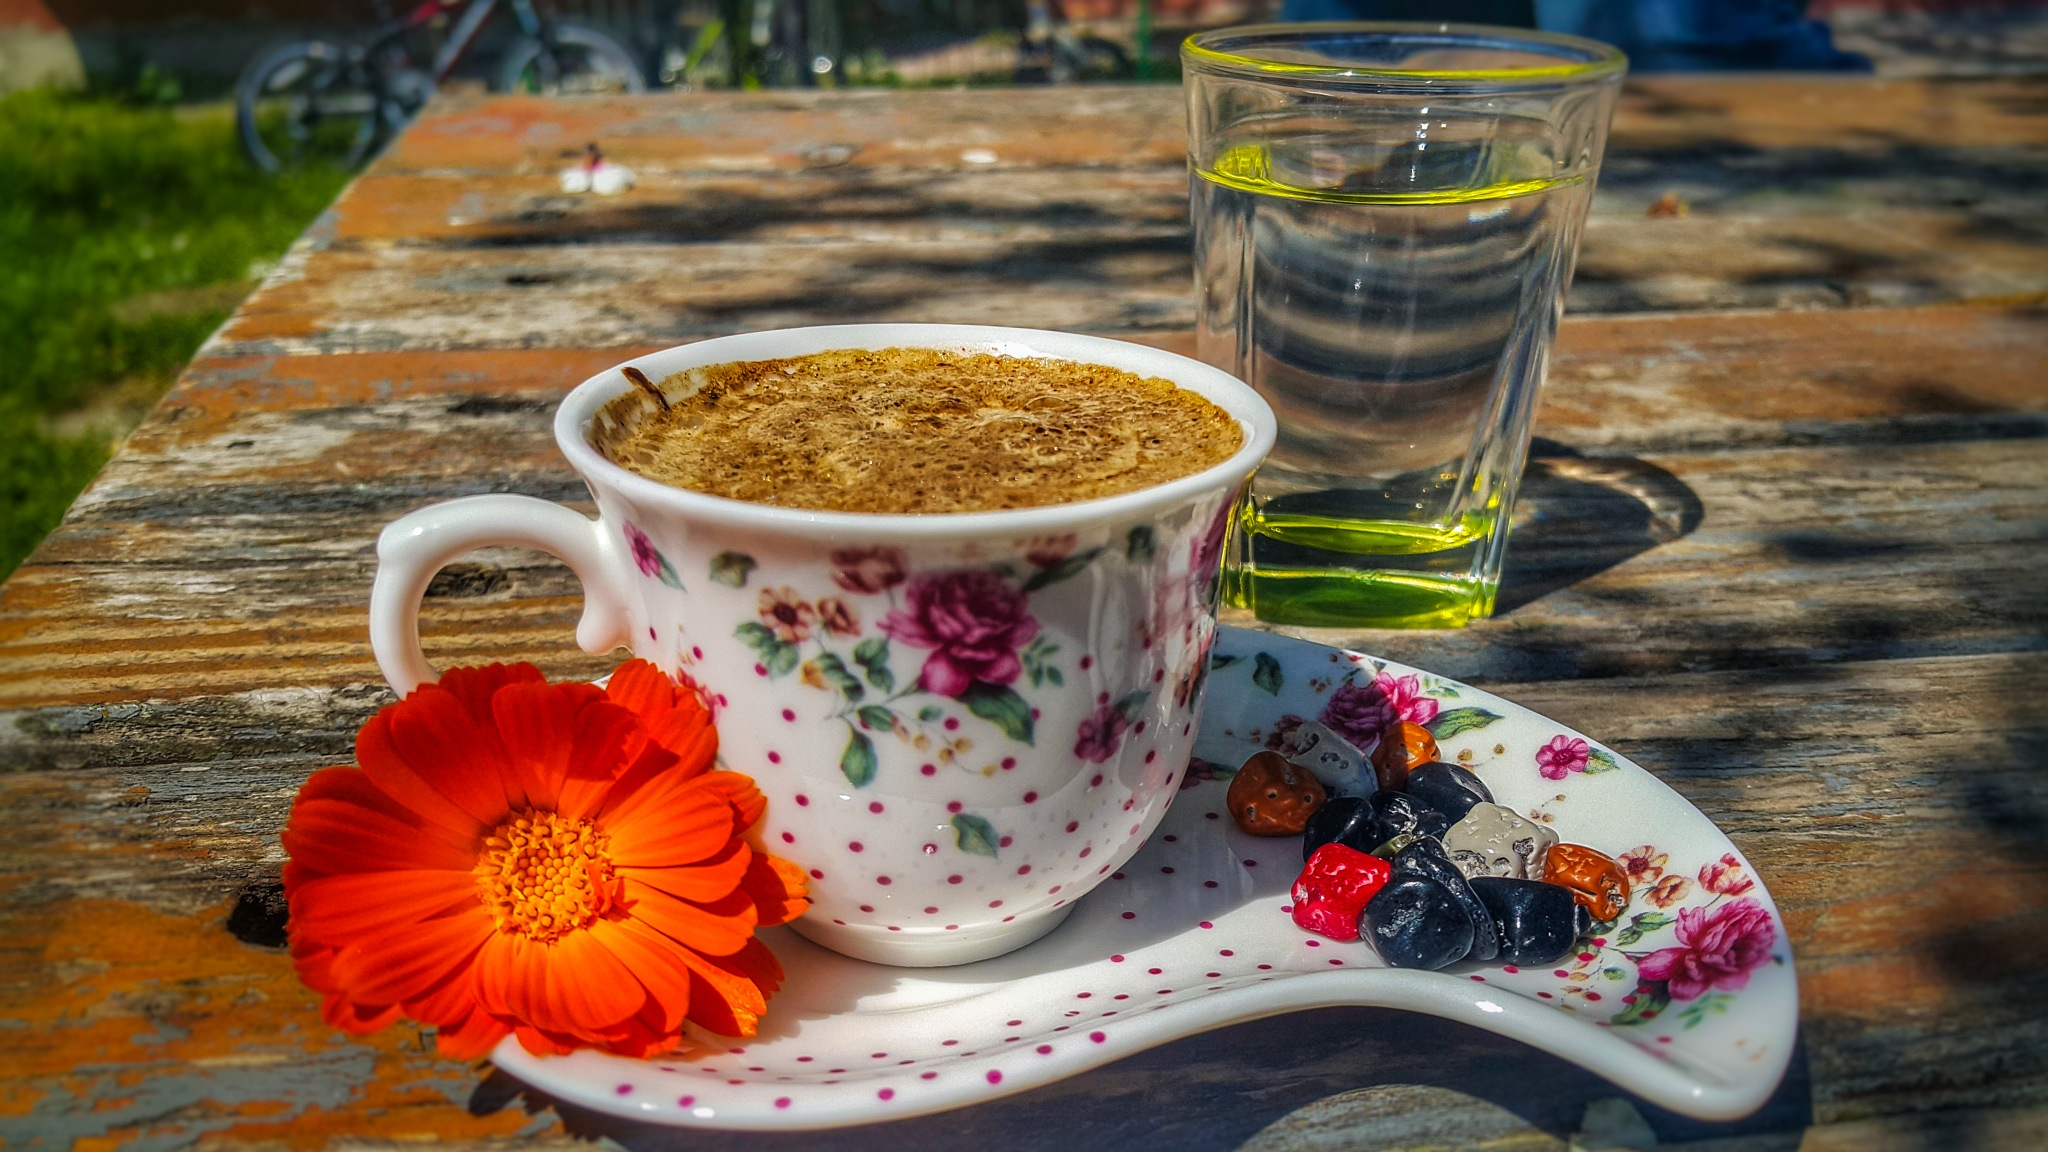 who want a coffee break ? by Serdar